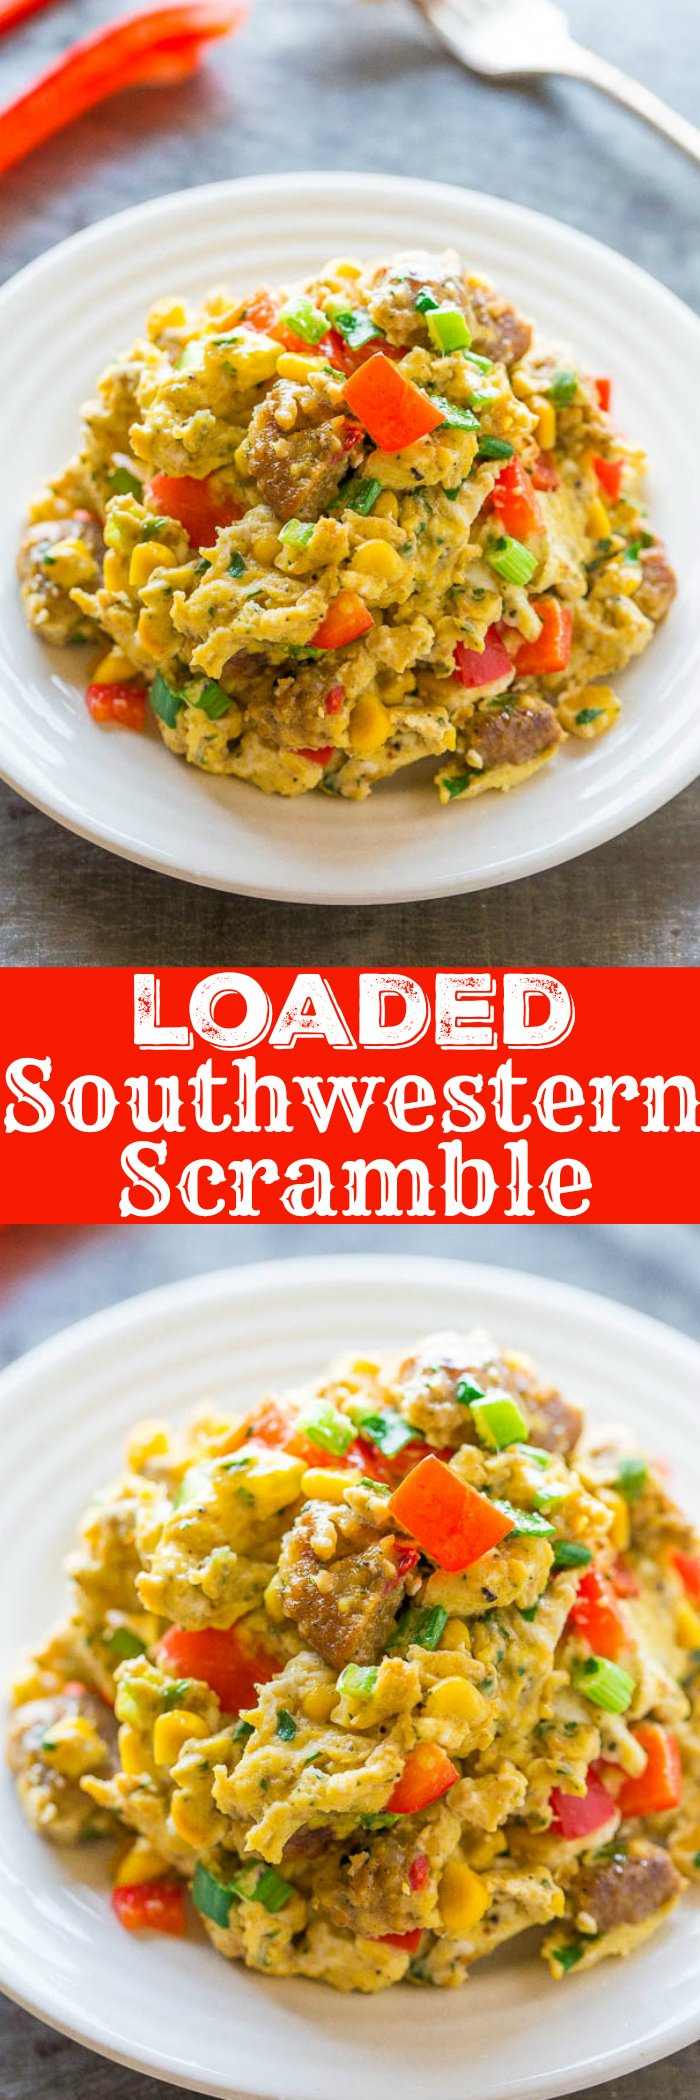 Loaded Southwestern Scramble - Don't settle for plain scrambled eggs when you can have these!! Peppers, onions, corn, and more for flavor and texture! Easy, ready in 10 minutes, and healthy!!